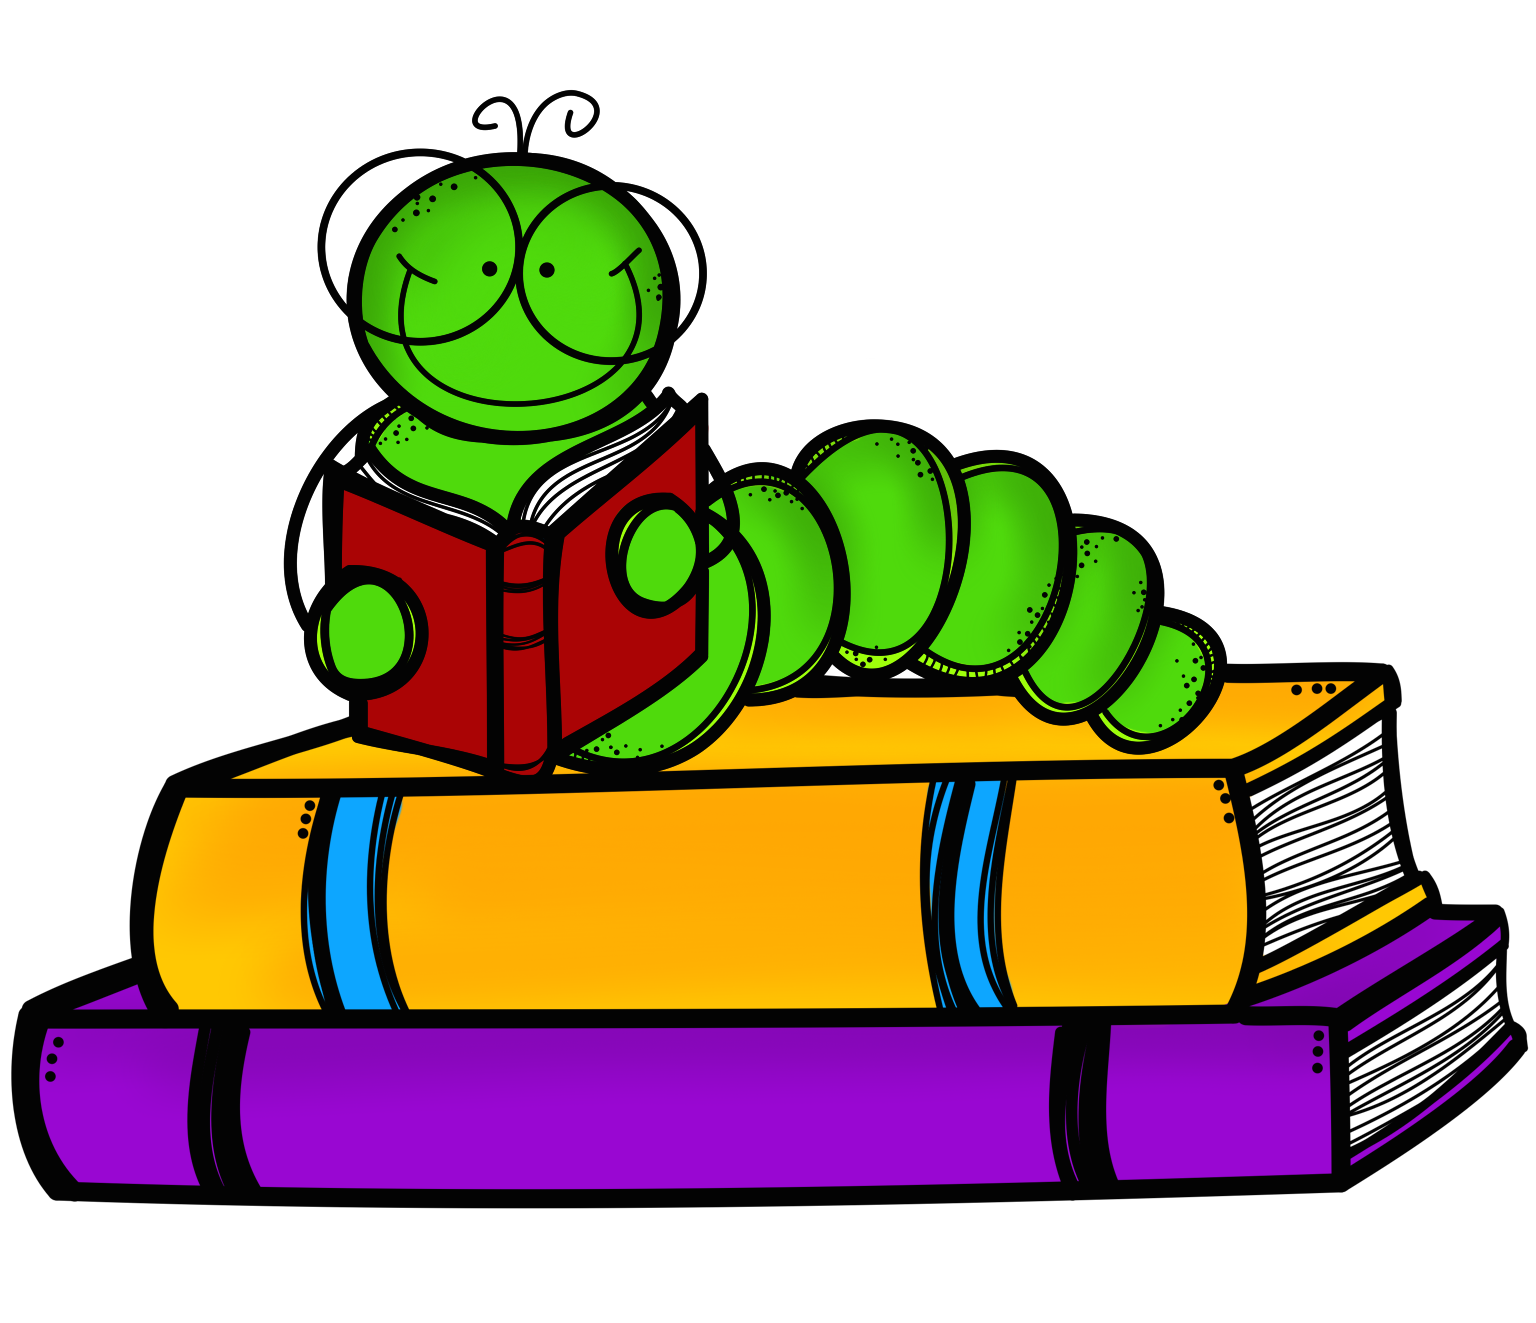 1536x1323 Club clipart animated reading